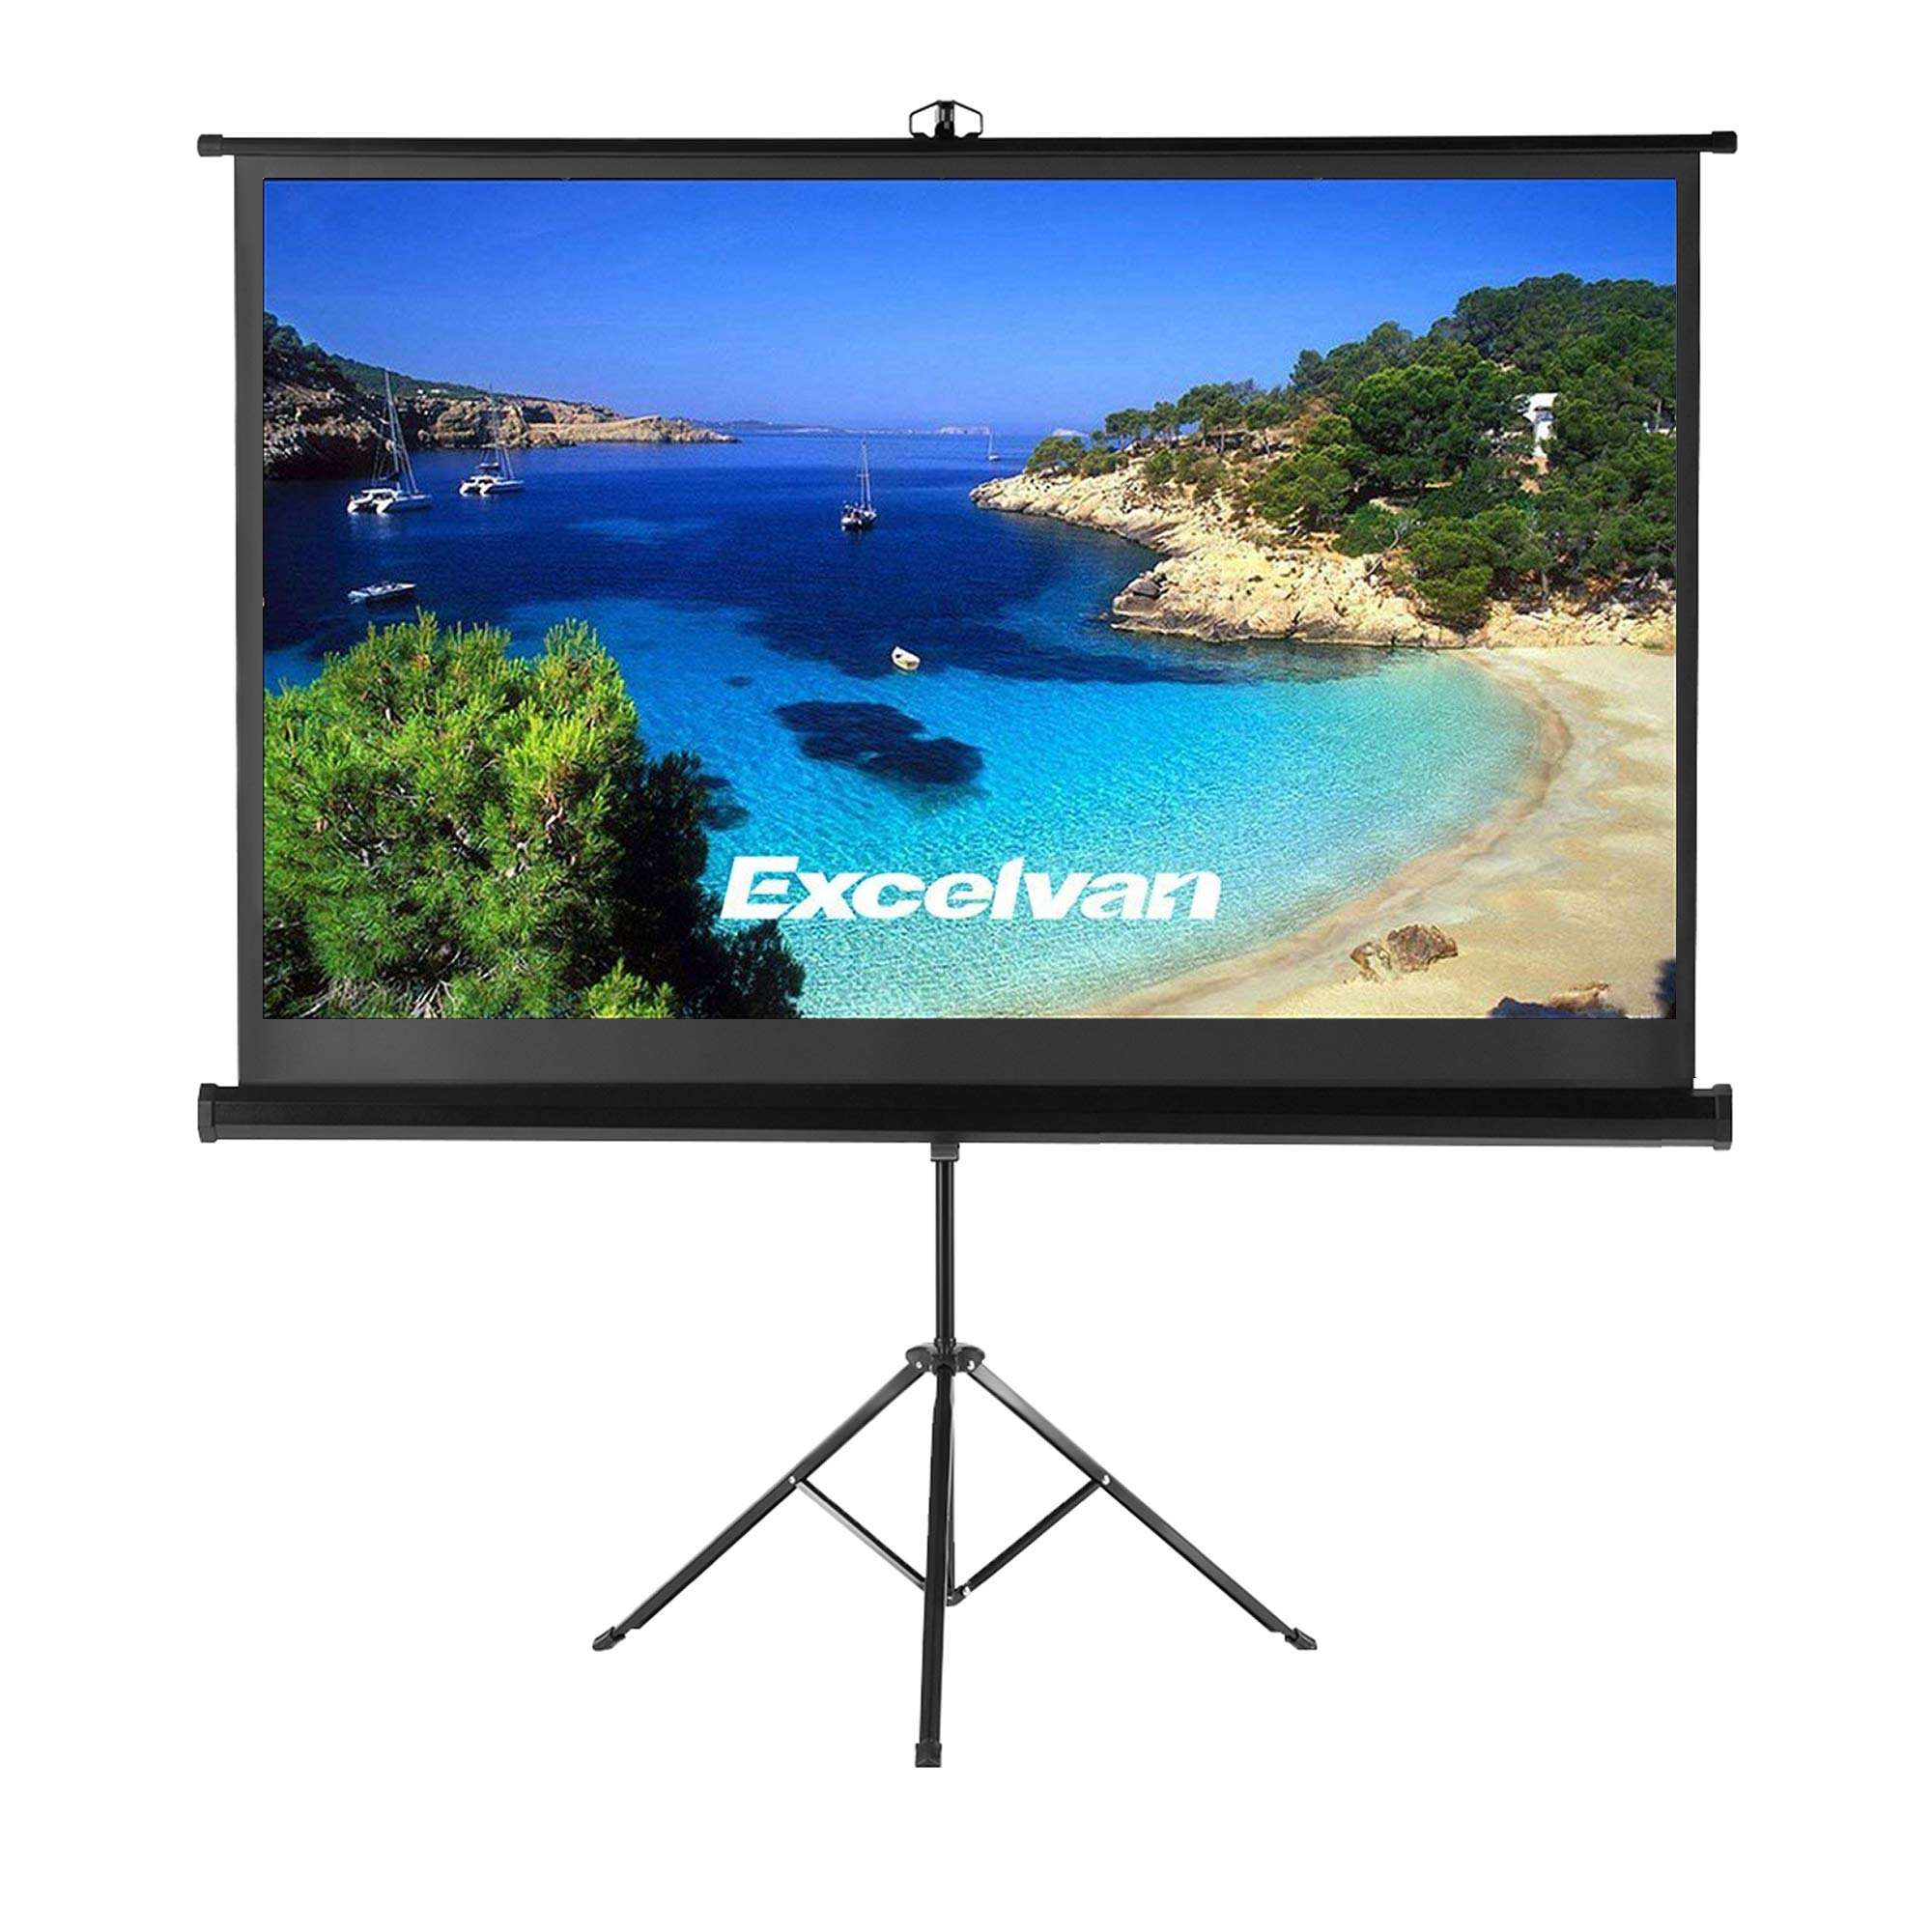 Projector Screen with Foldable Stand Tripod, Excelvan Portable Video HD Diagonal 16:9 Indoor Outdoor Screen Adjustable Wrinkle-Free Design for Home Cinema Movie Projection(100 inch) by Excelvan (Image #1)